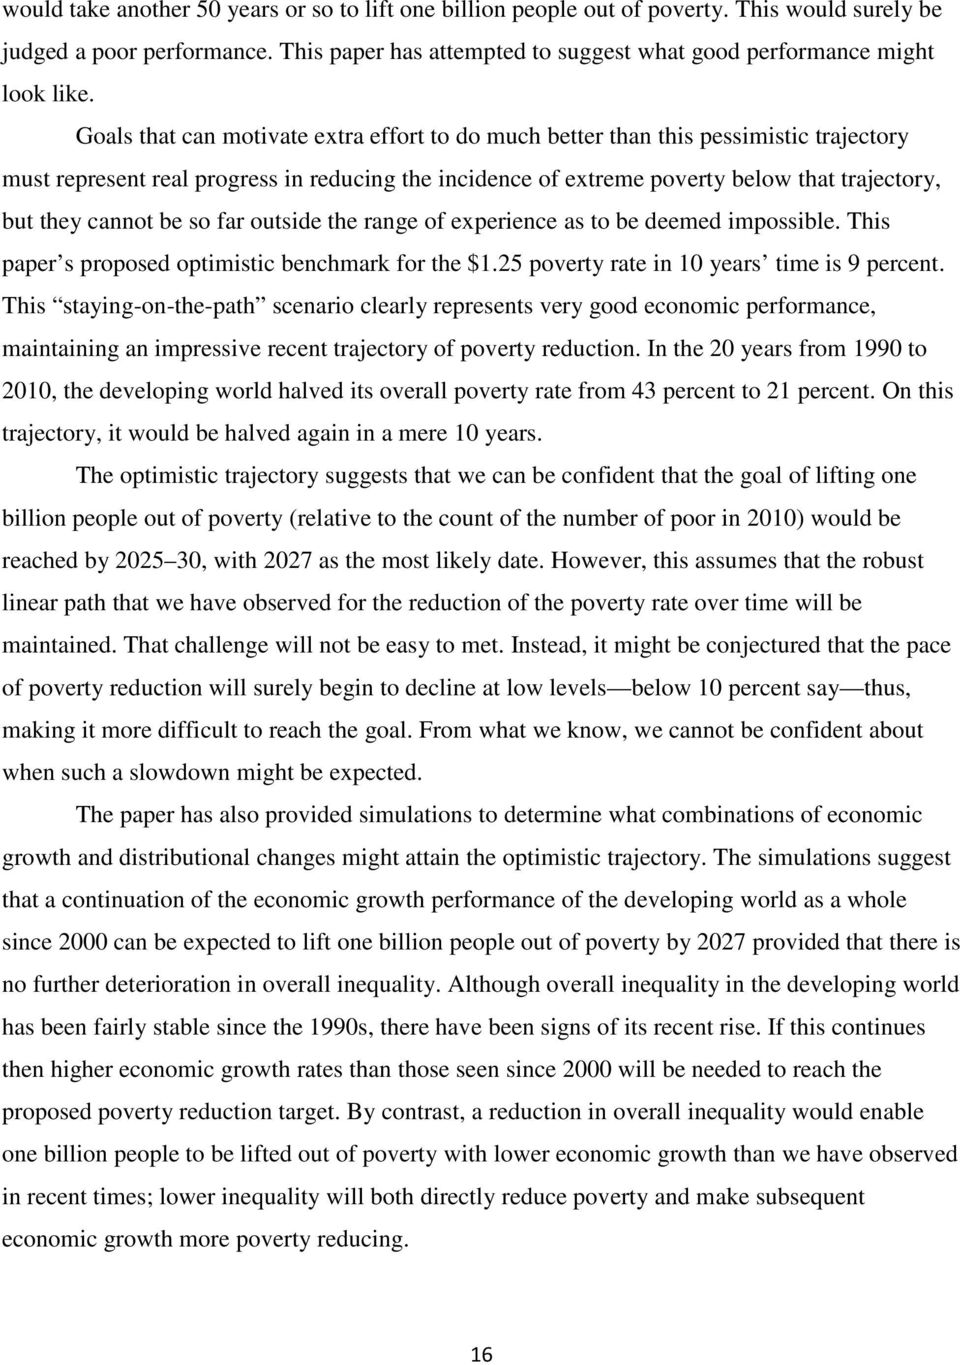 cannot be so far outside the range of experience as to be deemed impossible. This paper s proposed optimistic benchmark for the $1.25 poverty rate in 10 years time is 9 percent.